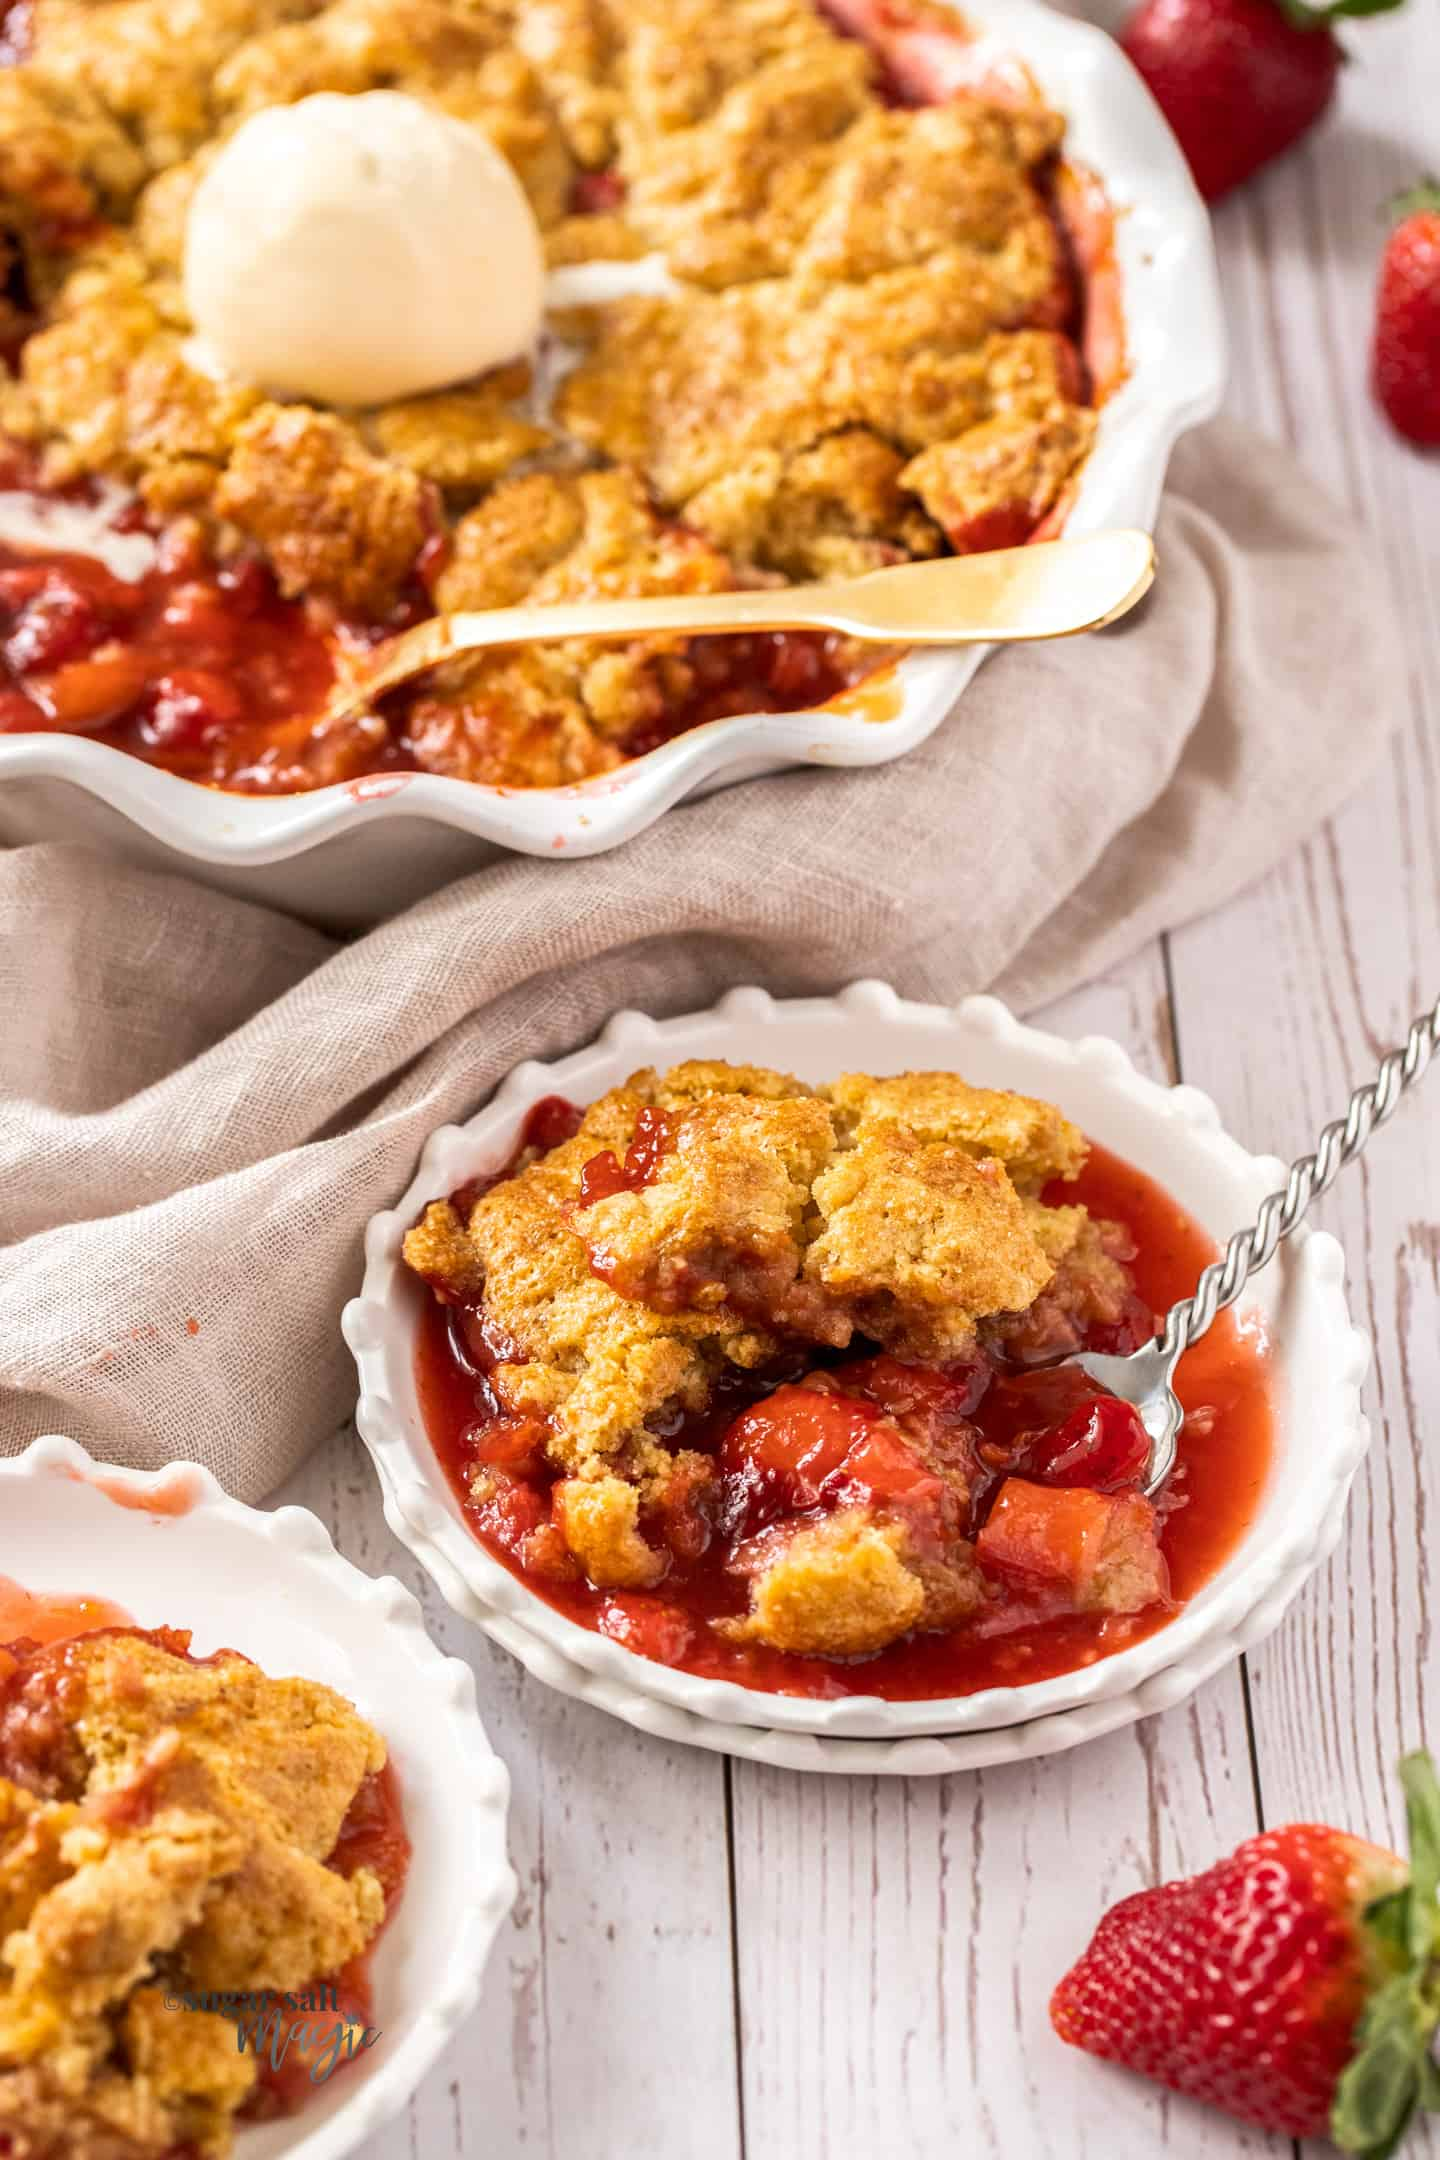 A small white dessert plate filled with strawberry rhubarb cobbler.